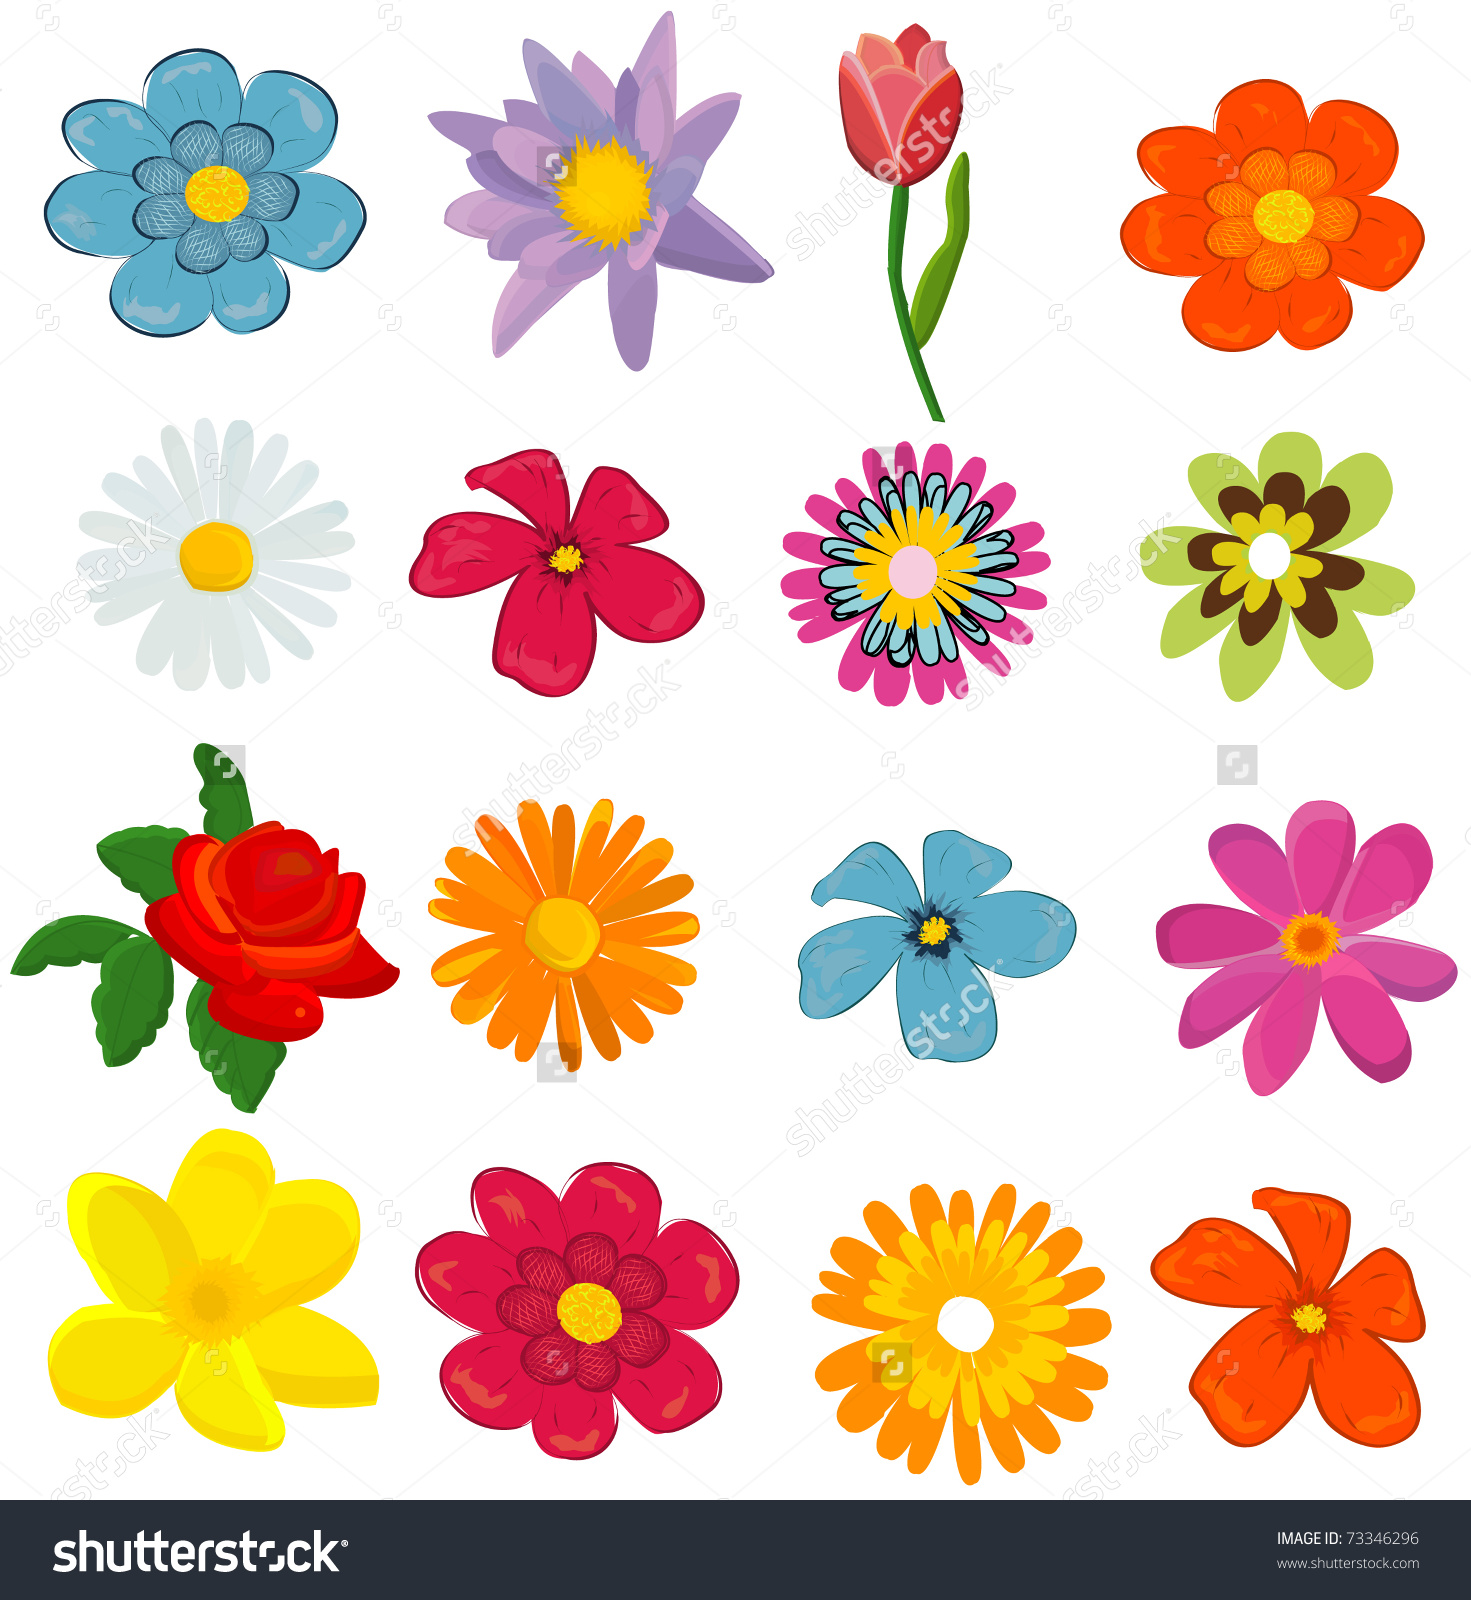 Fall Leaves Wallpaper Border Flower Grafics 20 Free Cliparts Download Images On